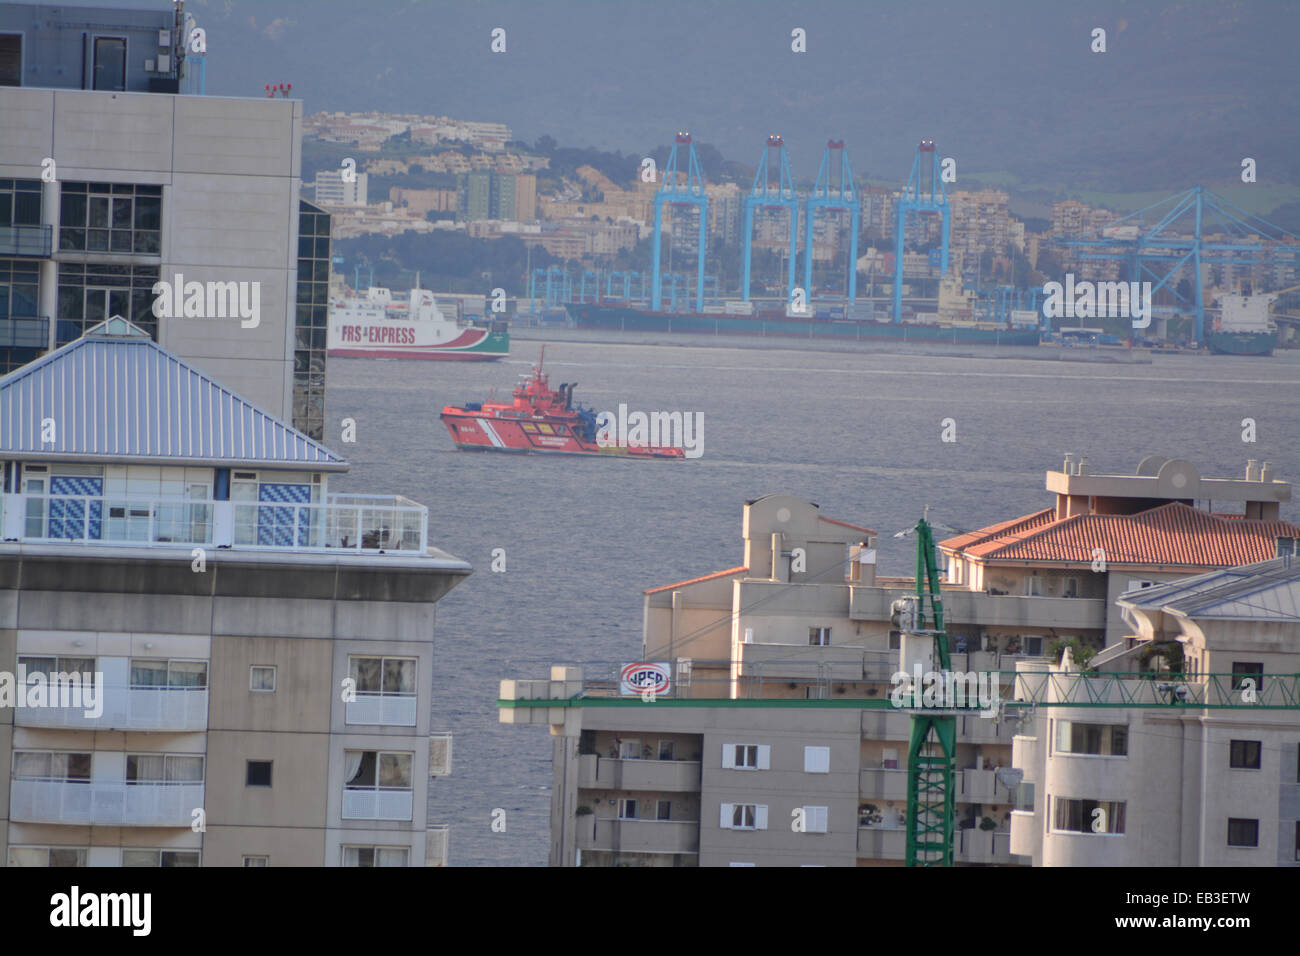 Gibraltar. 25th November, 2014. Spanish state Search and Rescue pollution control vessel Luz del Mar was observed Stock Photo